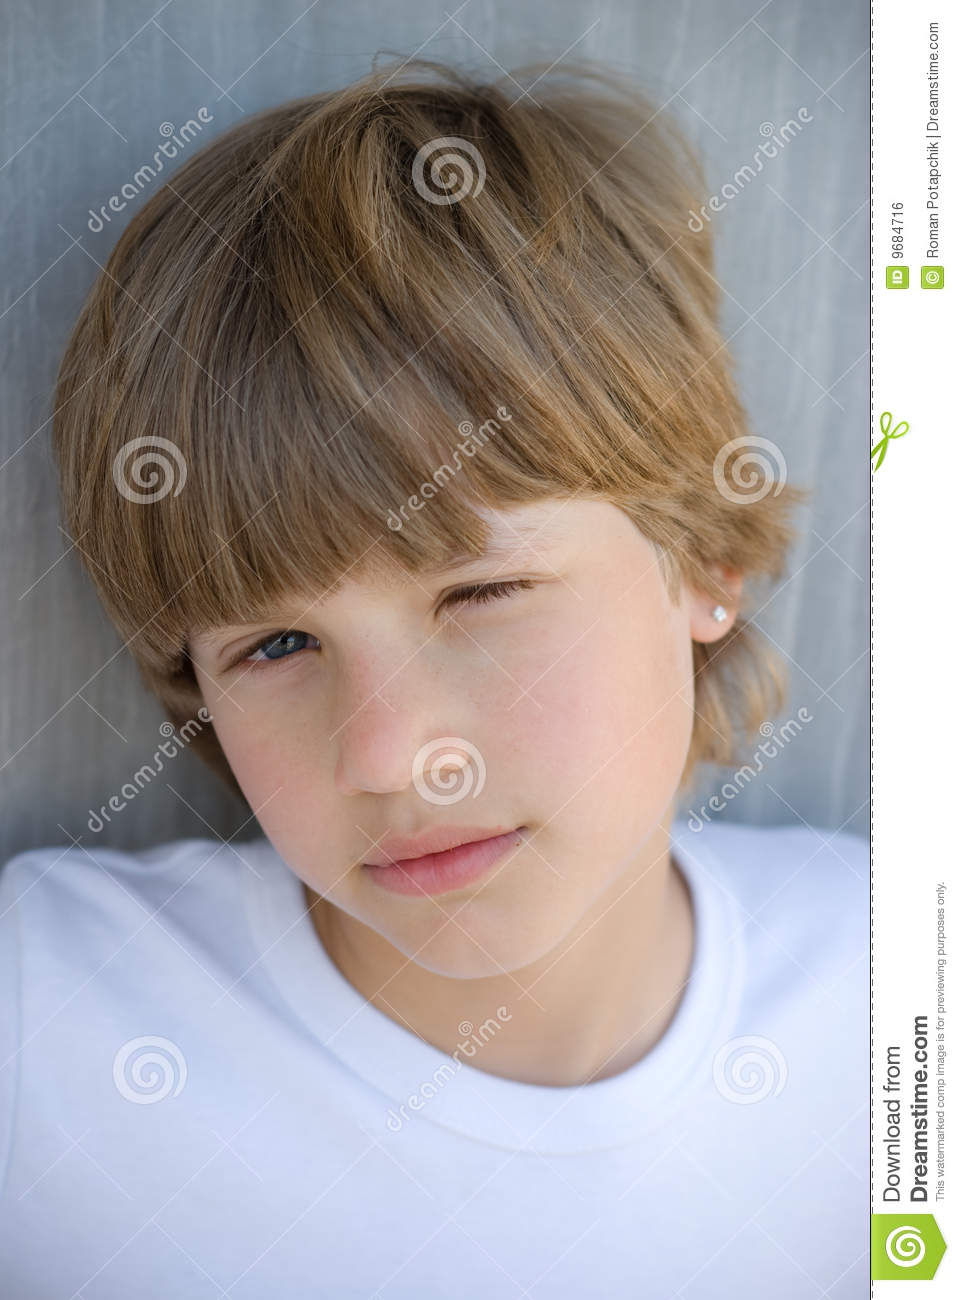 Young Cute Boy Royalty Free Stock Image Image 9684716